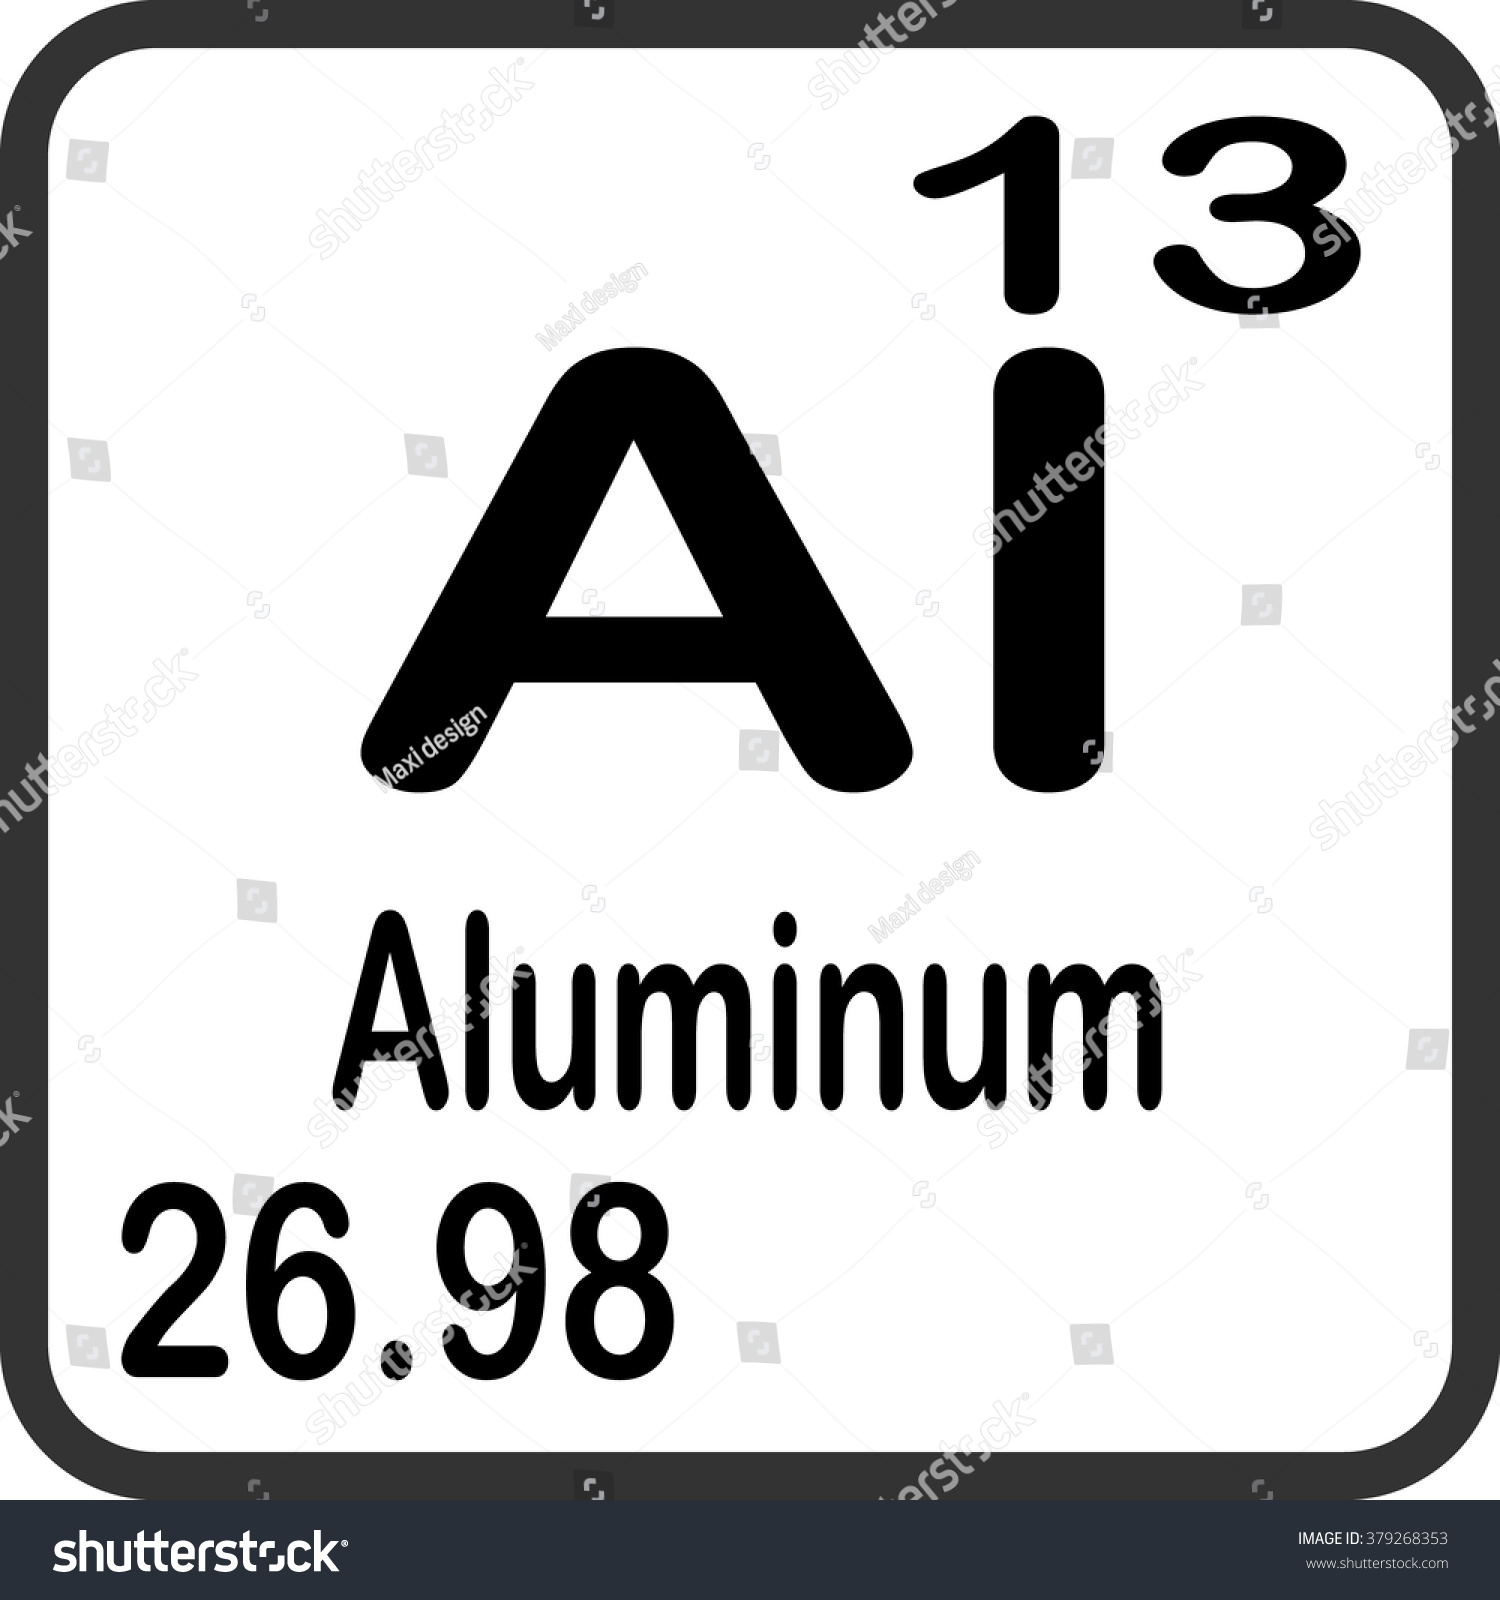 Periodic table elements aluminum stock vector 379268353 shutterstock periodic table of elements aluminum gamestrikefo Image collections